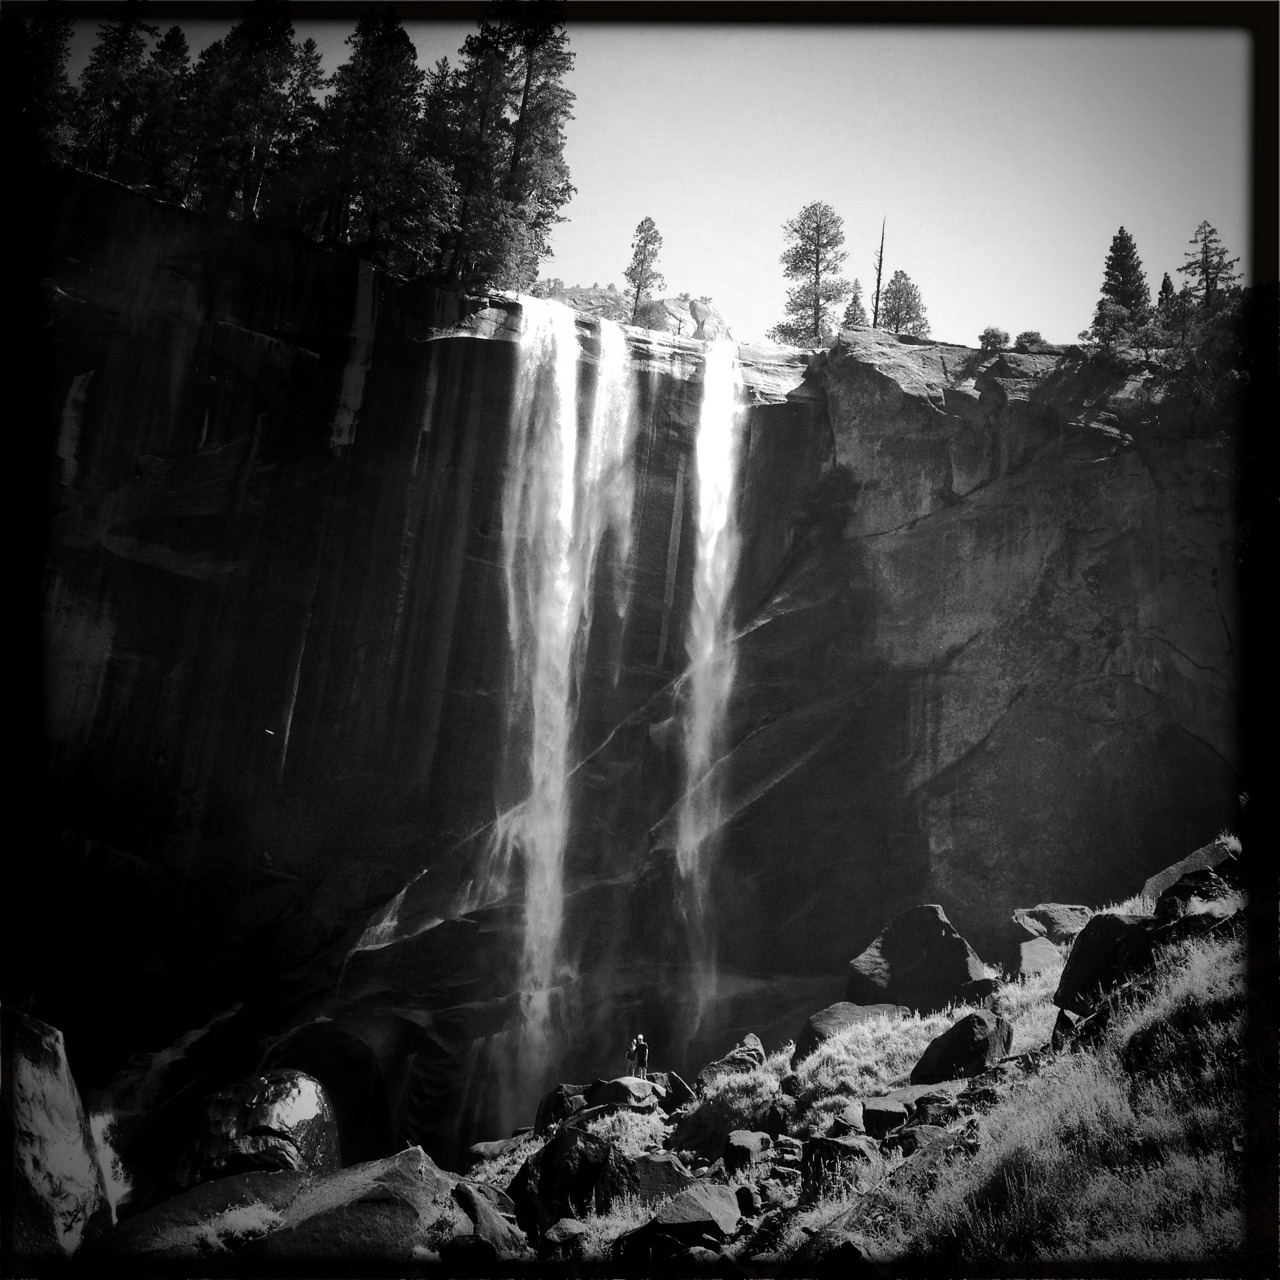 Vernal Falls, Yosemite. Yes taken with the hipstamatic alongside a dozen tourists lugging 70-200 lenses. Is their photo better? Sure definitely better rez. But what are they going to do with that image? I enjoyed my day shooting with my Lumix GX1 and my iPhone and my back isn't broken. Am I going to sell these images? Maybe not, but I may make a cool collage for the kitchen.